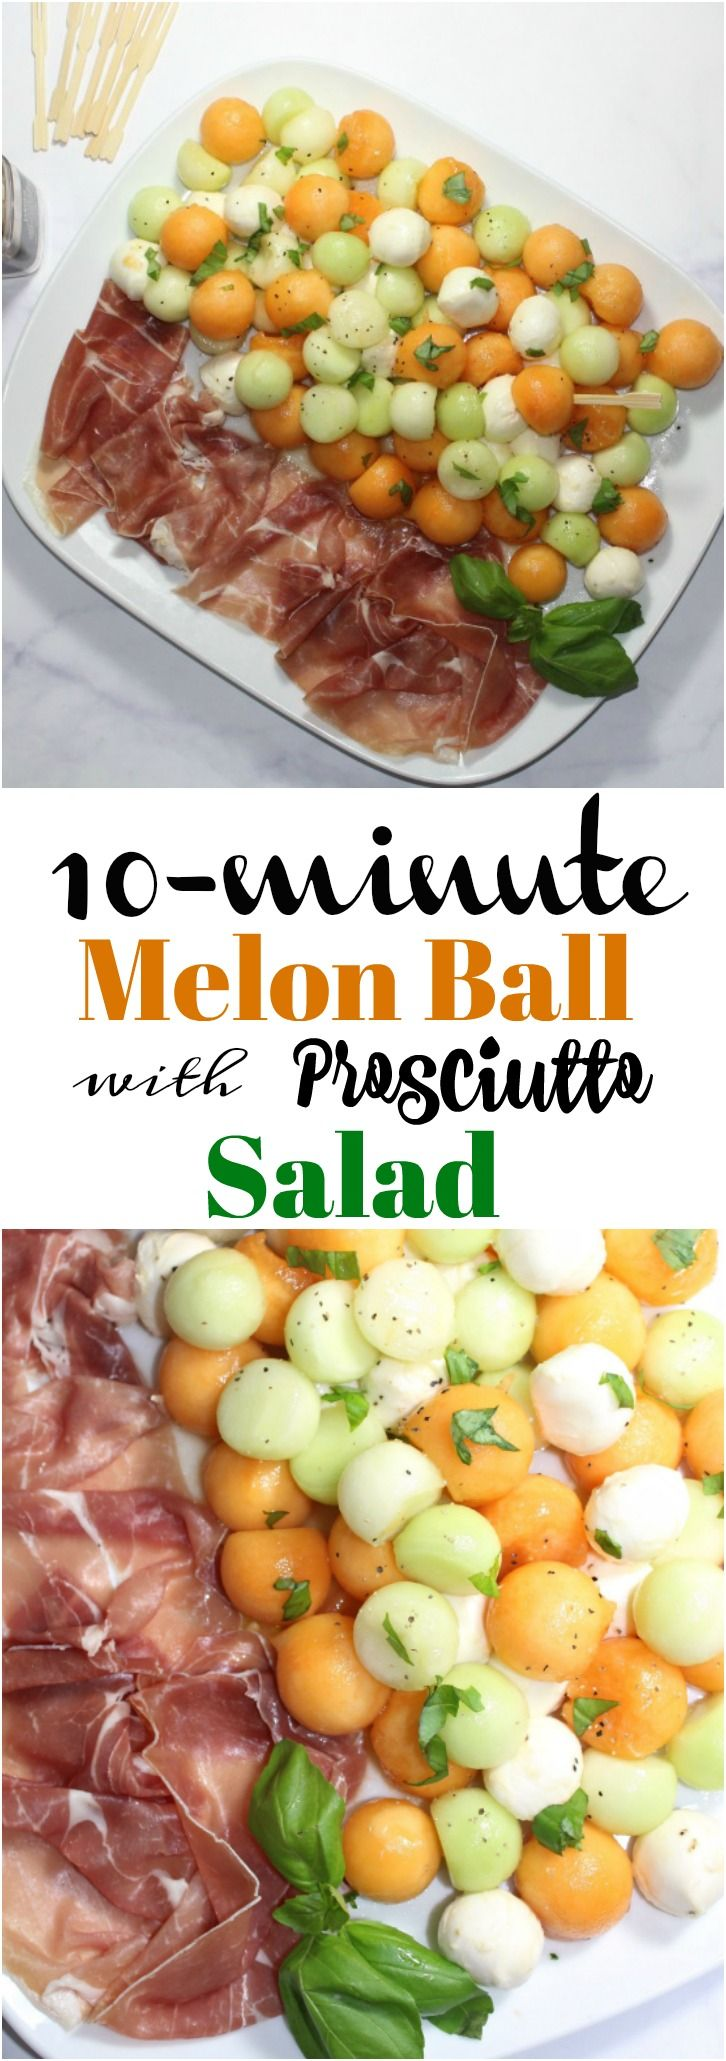 This 10-minute colorful, light and refreshing Melon Ball Prosciutto Salad is perfect an easy appetizer or side dish. The saltiness of the prosciutto and the sweetness of the melons make this appetizer incredibly delicious.